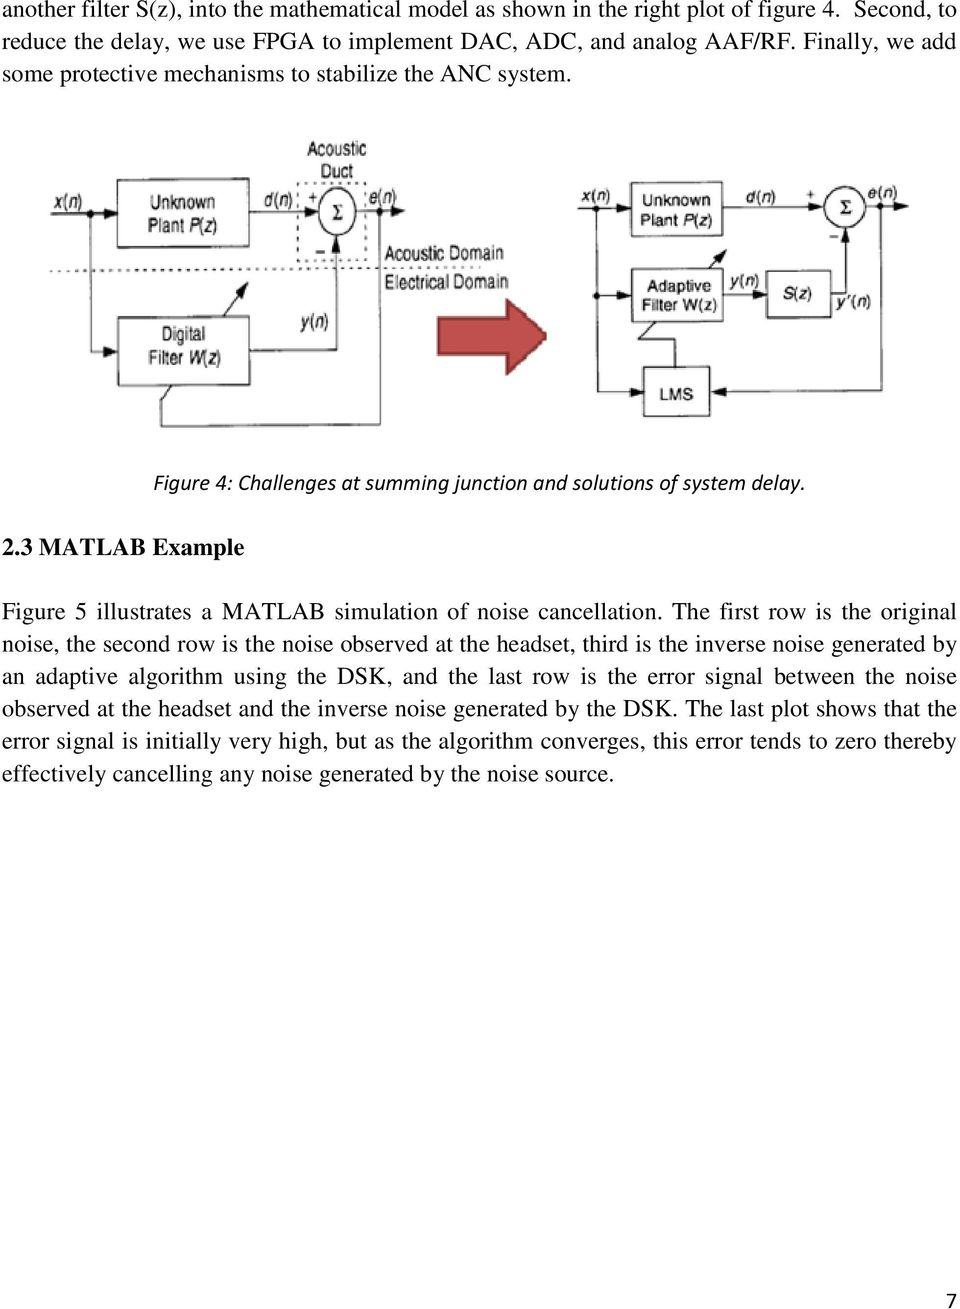 Active Noise Cancellation Project Pdf Anc Relay Wiring Diagram 3 Matlab Example Figure 5 Illustrates A Simulation Of